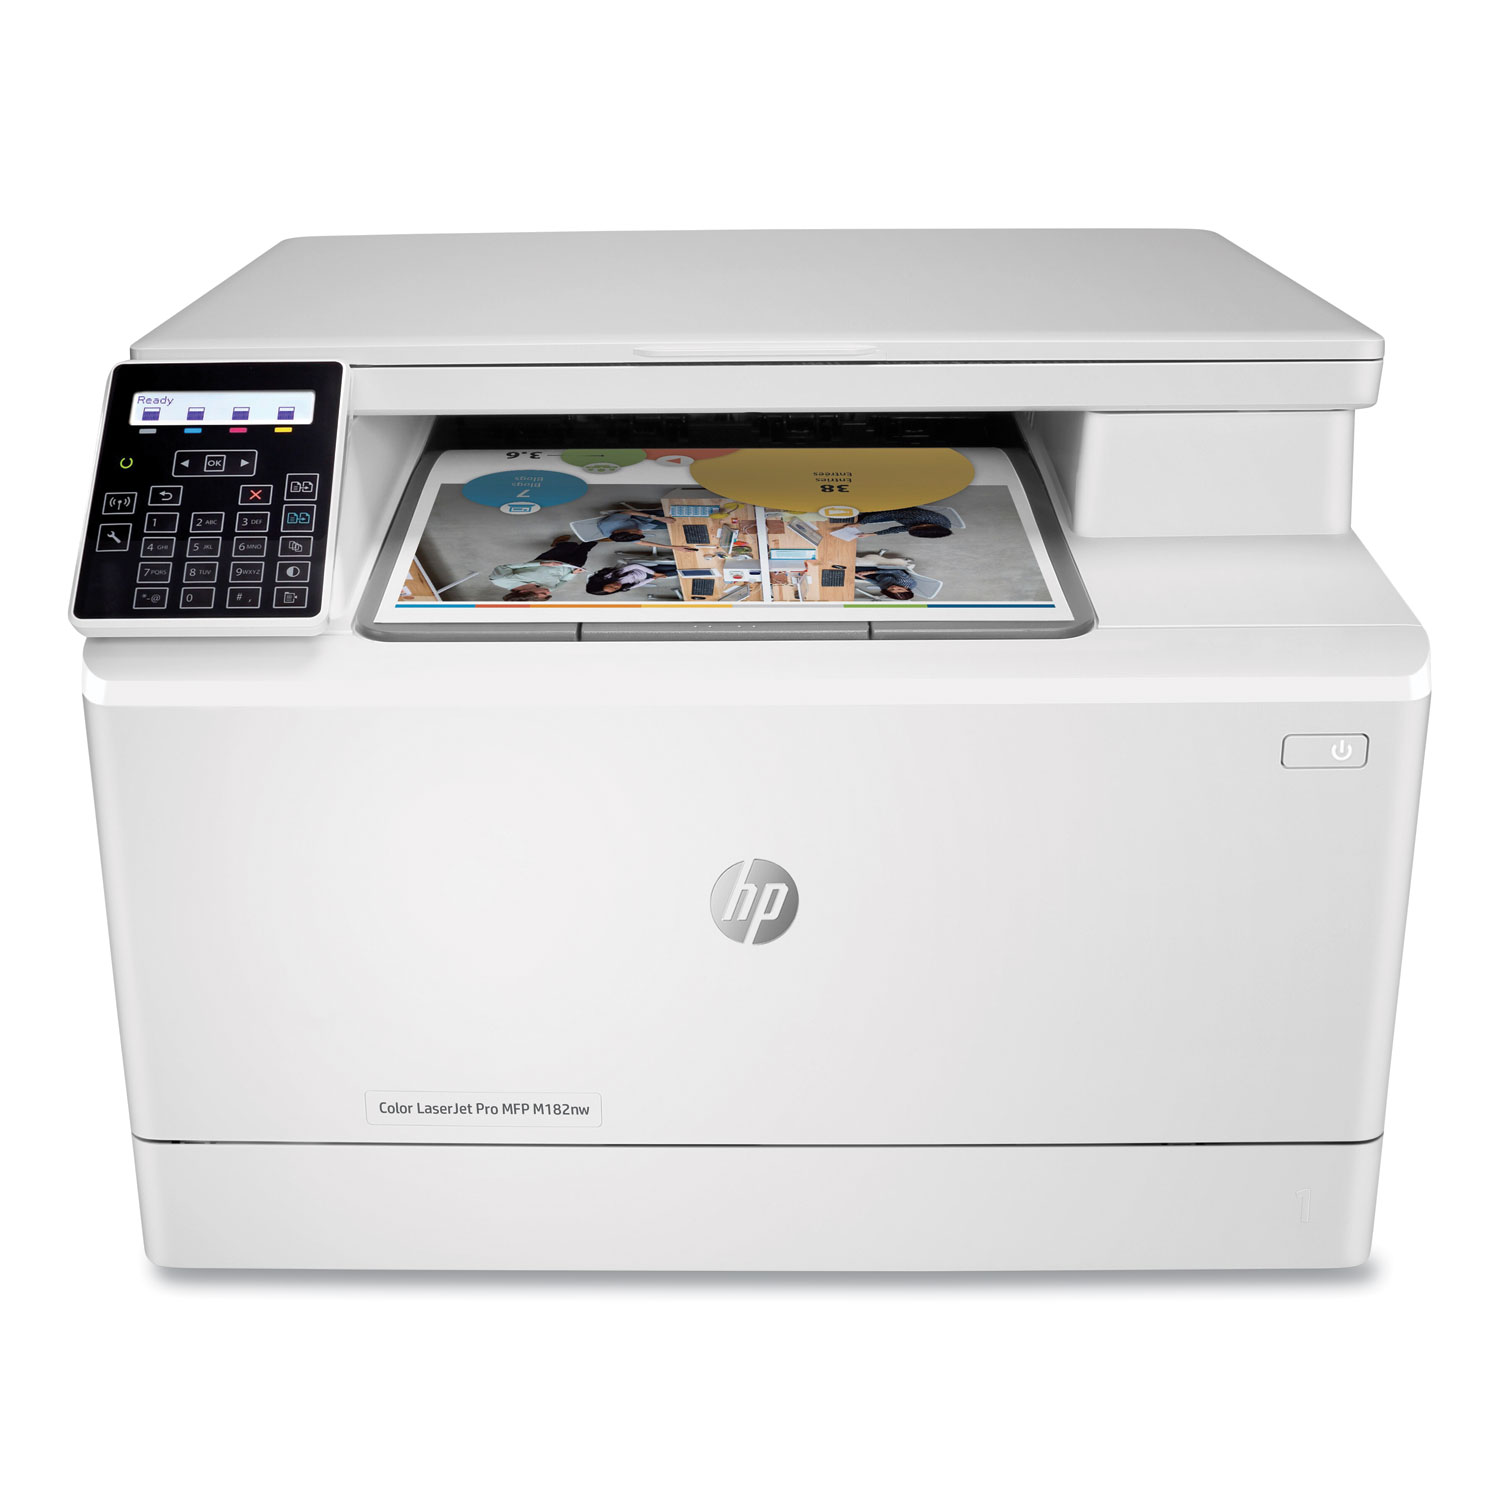 Color LaserJet Pro MFP M182nw Wireless Multifunction Laser Printer, Copy/Print/Scan